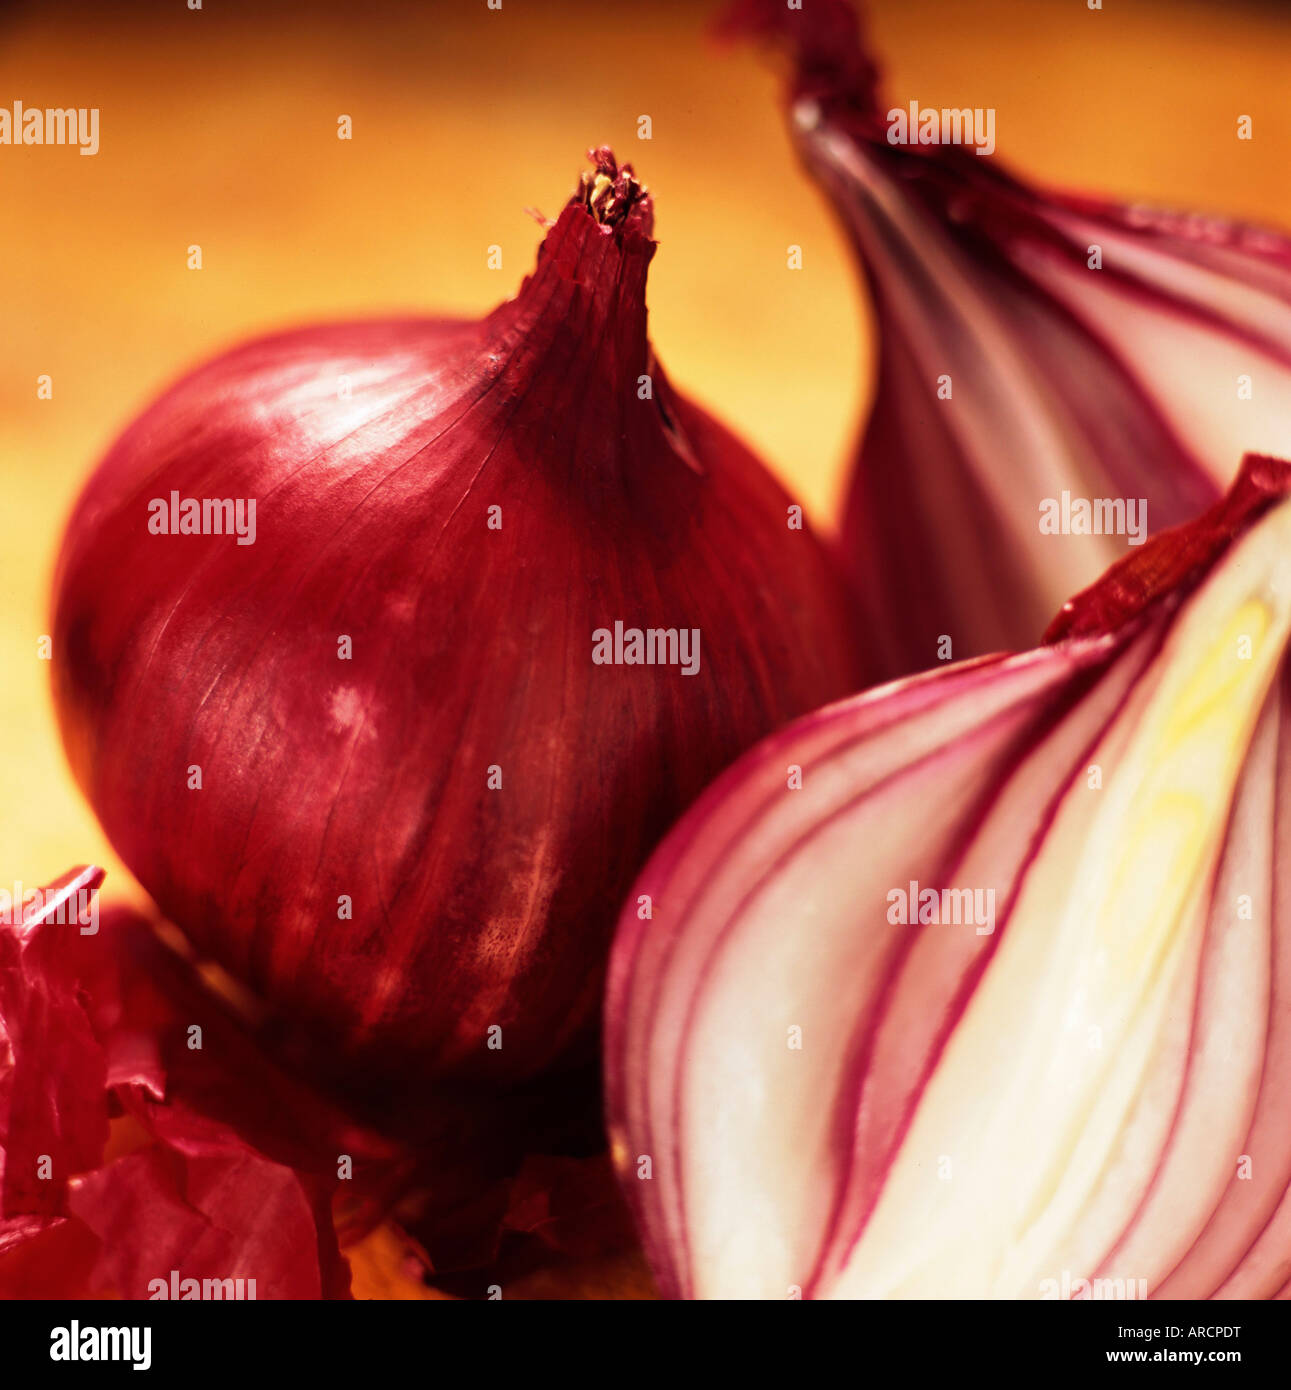 Studio shot of red onions - Stock Image